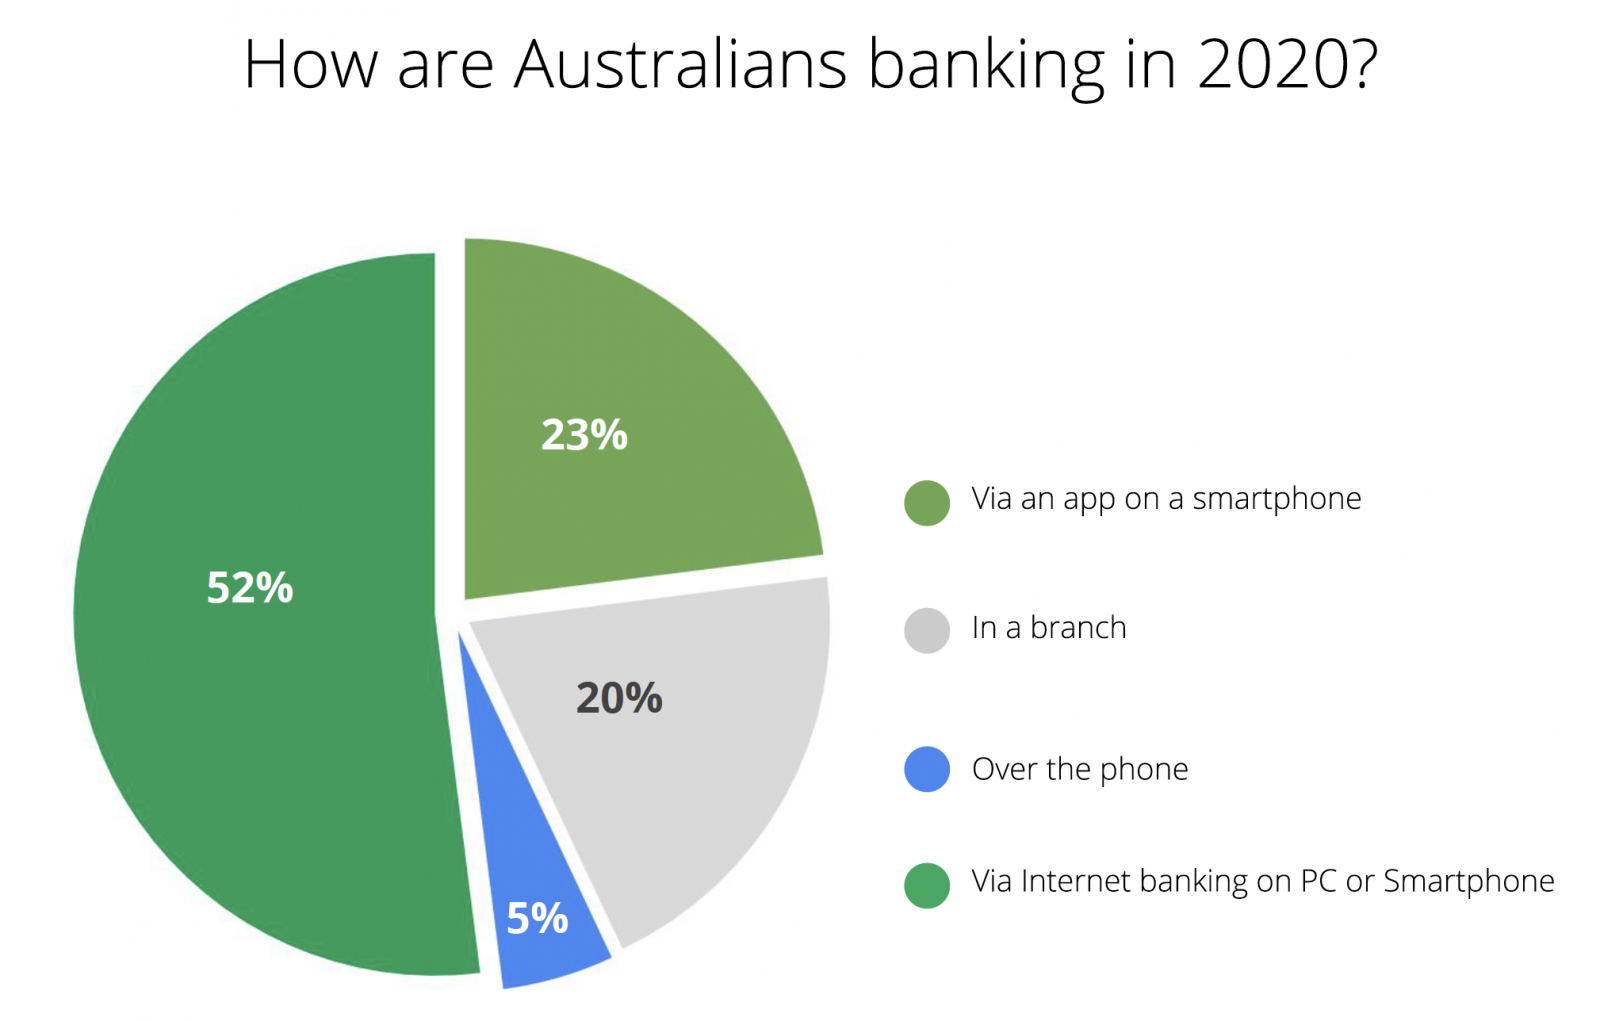 How are Australians banking in 2020?